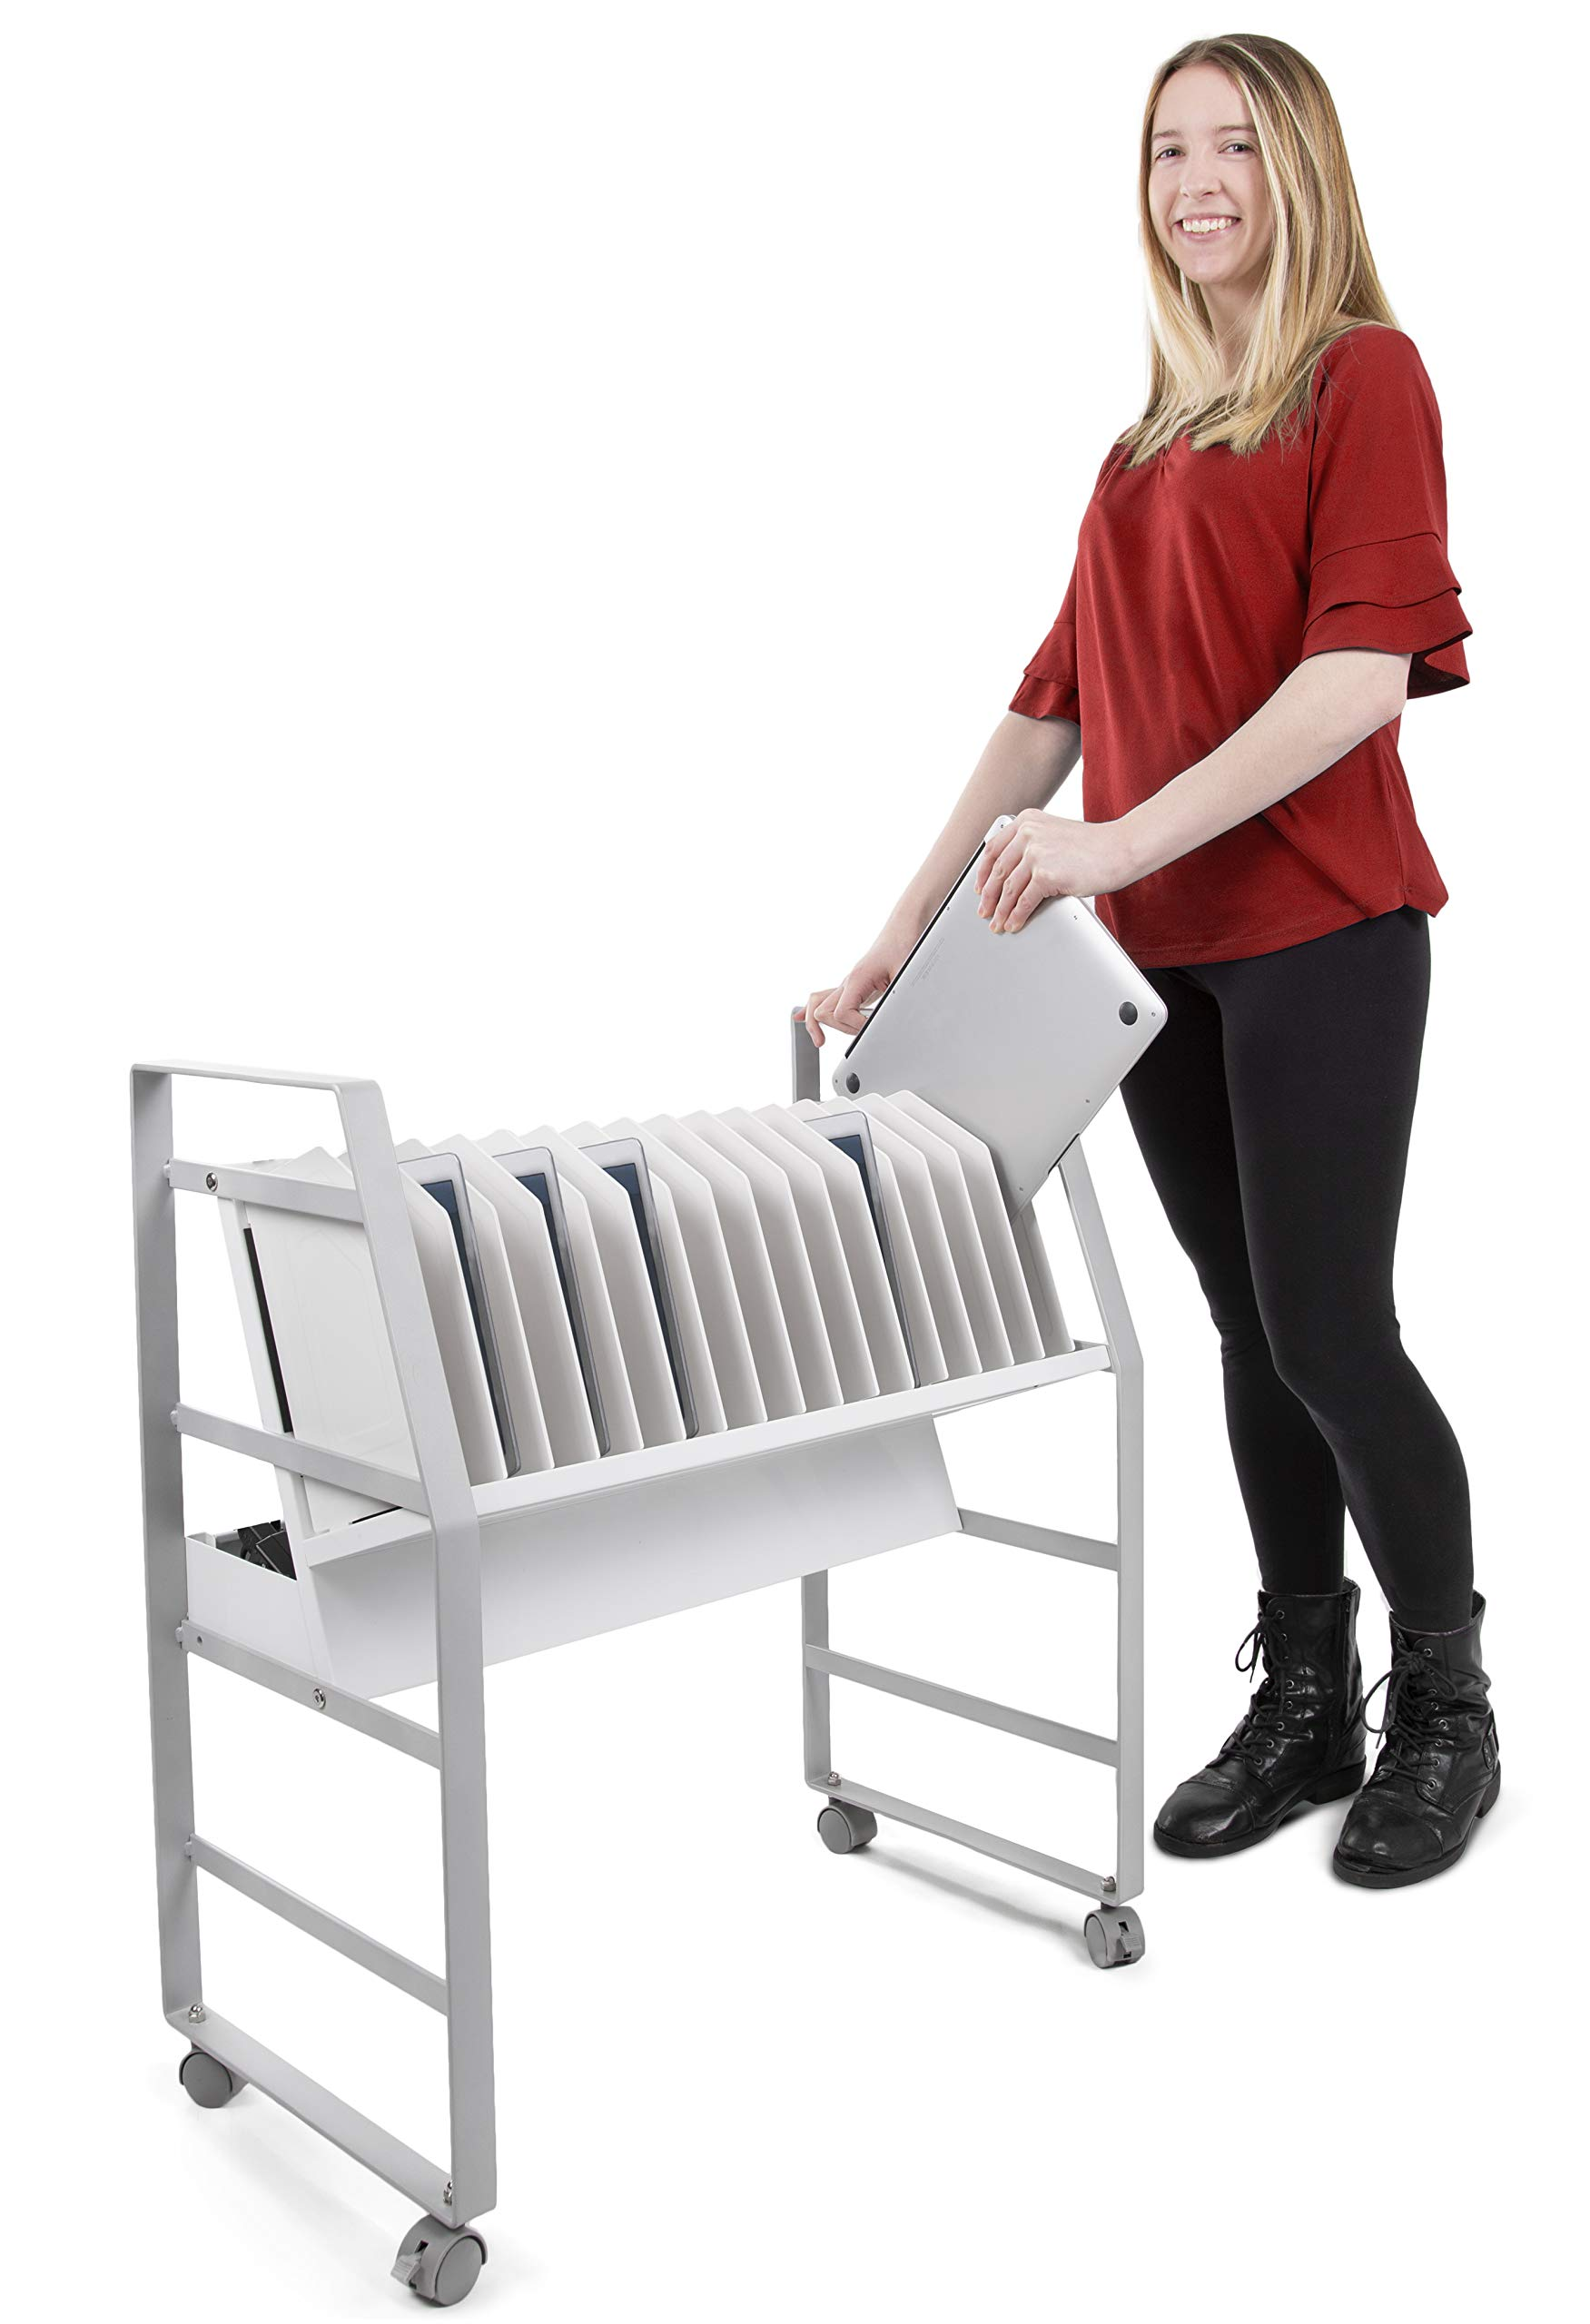 Line Leader Open Charging Cart for Tablets, iPads, Chromebooks and Laptops. 16 Bay Chromebook/Laptop Cart with One 16-Outlet Power Strip with Surge Protection. Perfect for Schools and Offices!